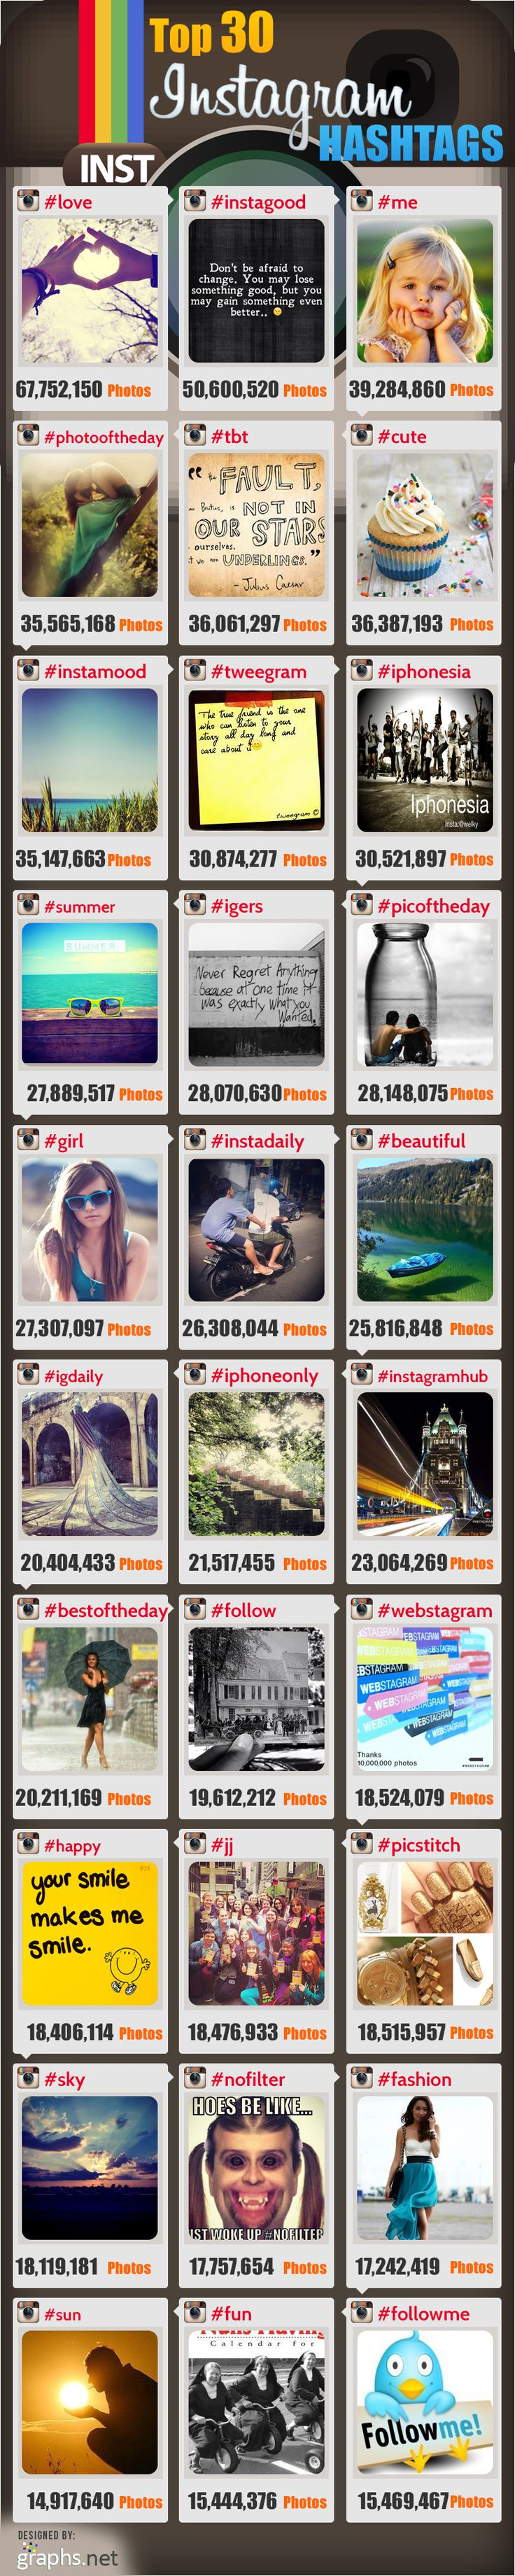 Top 30 Instagram Hashtags Infographs These hashtags are seen by millions of users everyday and easy to integrate into any marketing campaign.